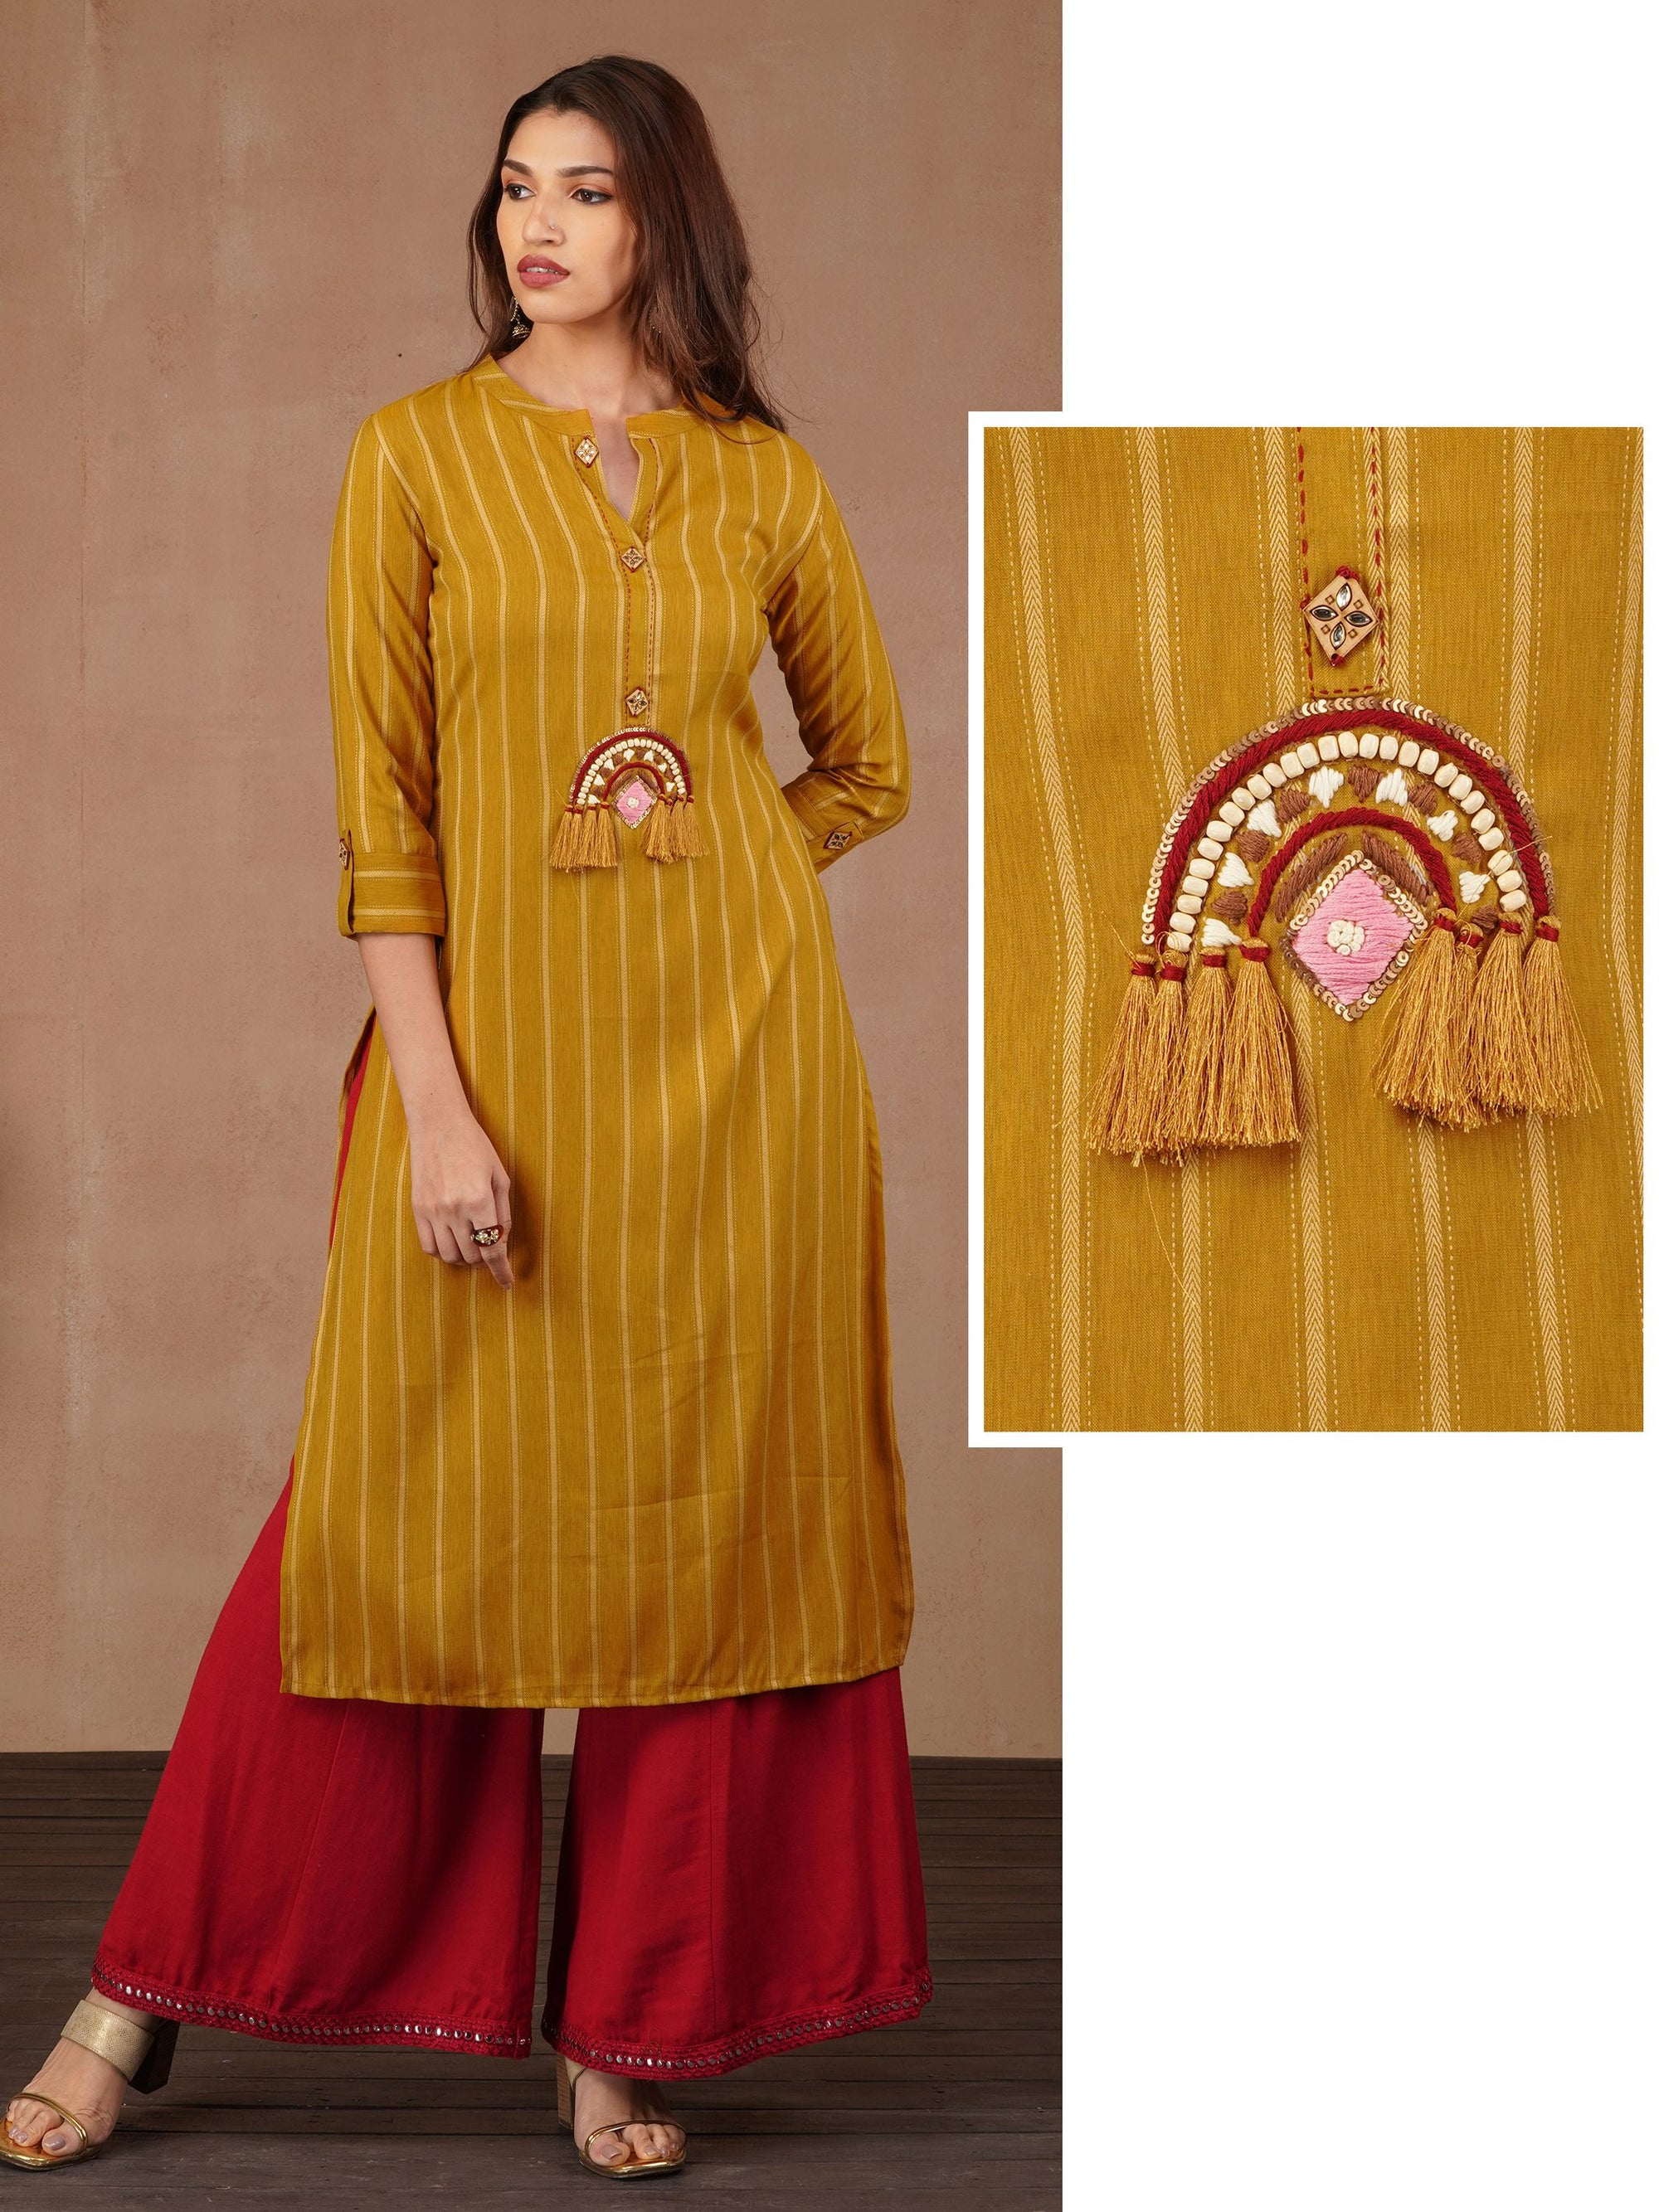 Chevron Stripes With Beads, Sequins & Tassels Kurta - Mustard